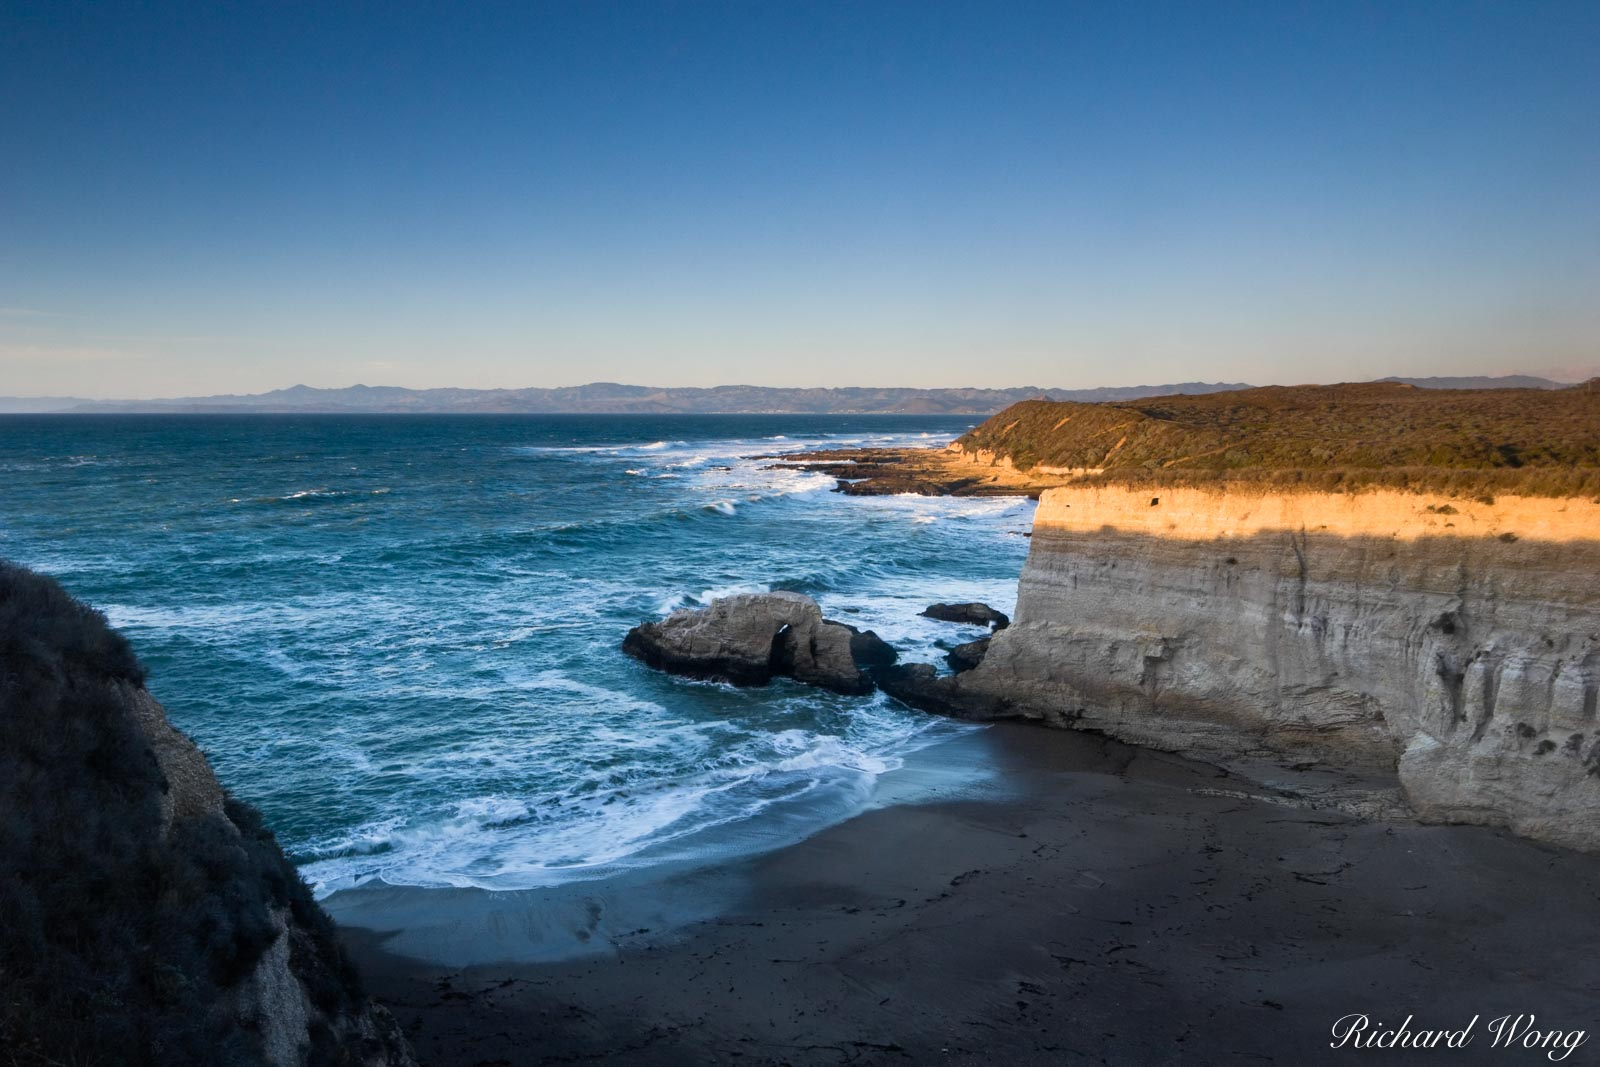 Spooner's Cove, Montana de Oro State Park, California, photo, photo